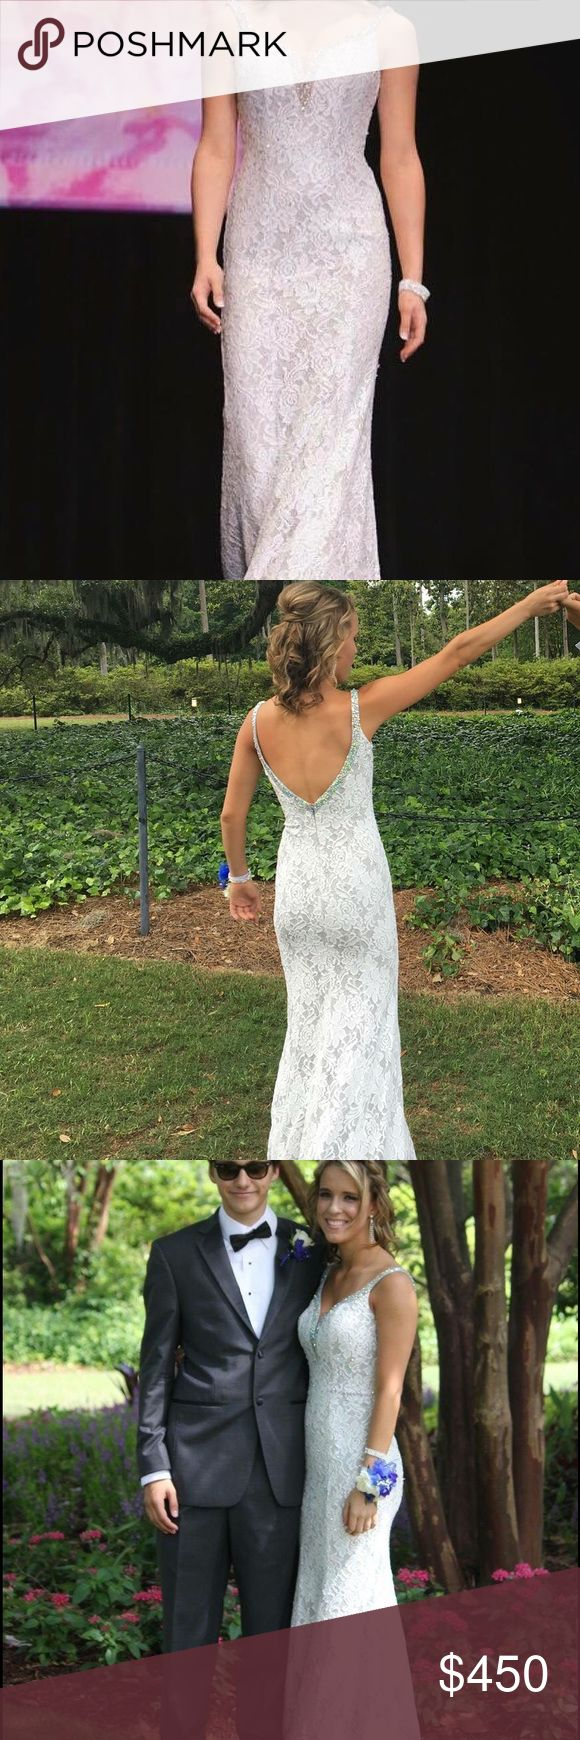 best prom images on pinterest formal dresses formal gowns